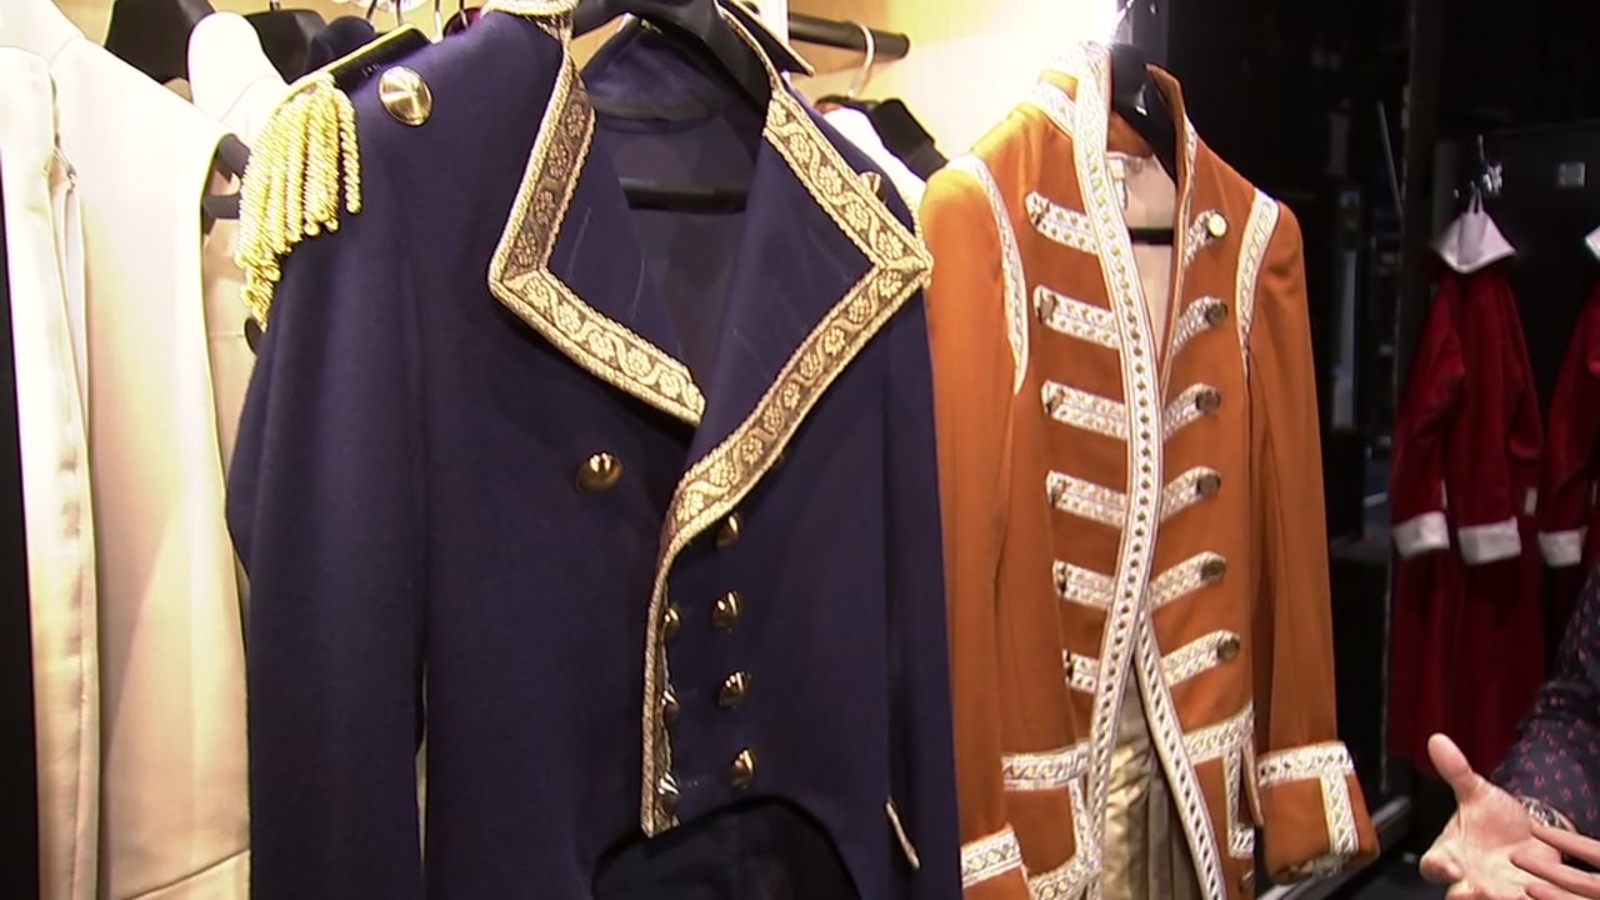 Get a peek at the costumes that bring 'Hamilton' to life